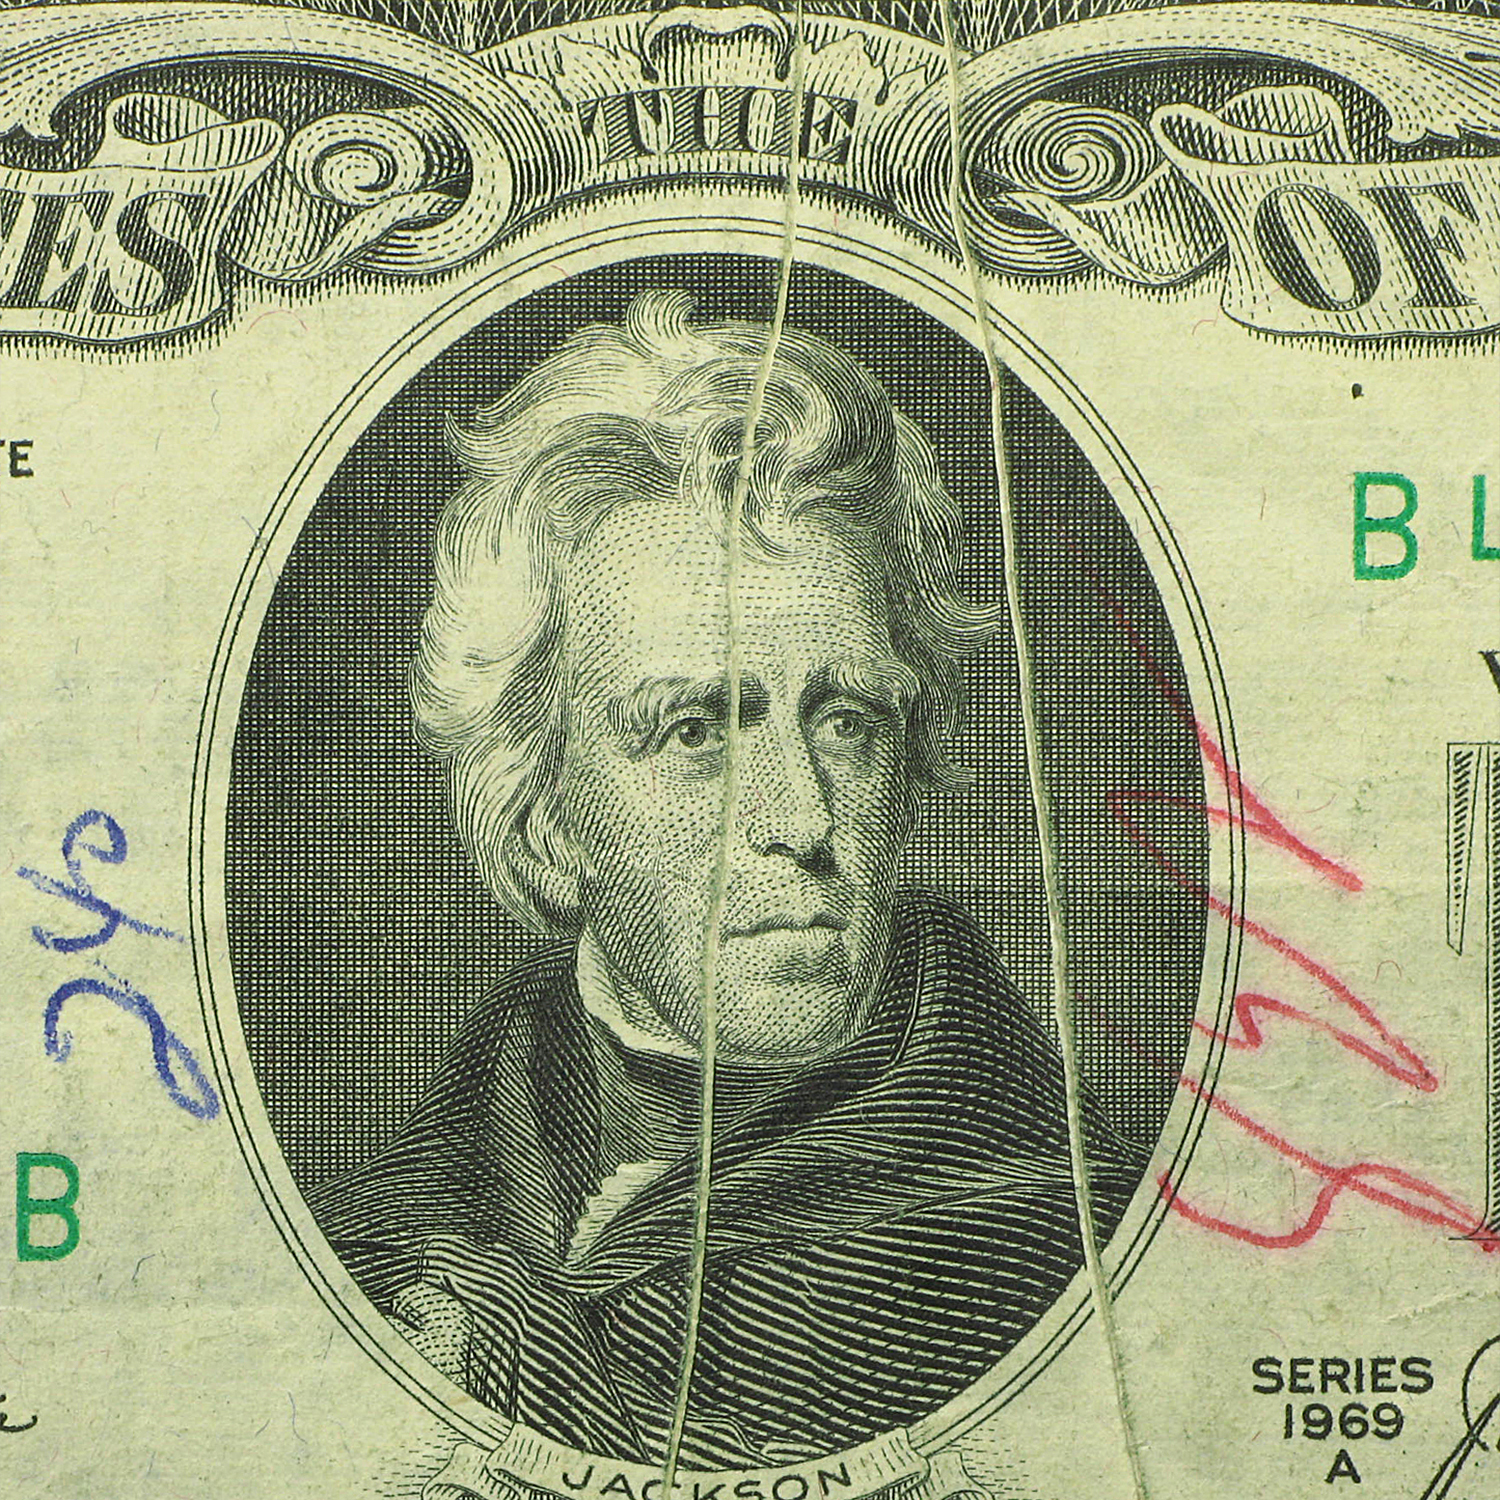 1969-A (B-New York) $20 FRN VF (Error Note)